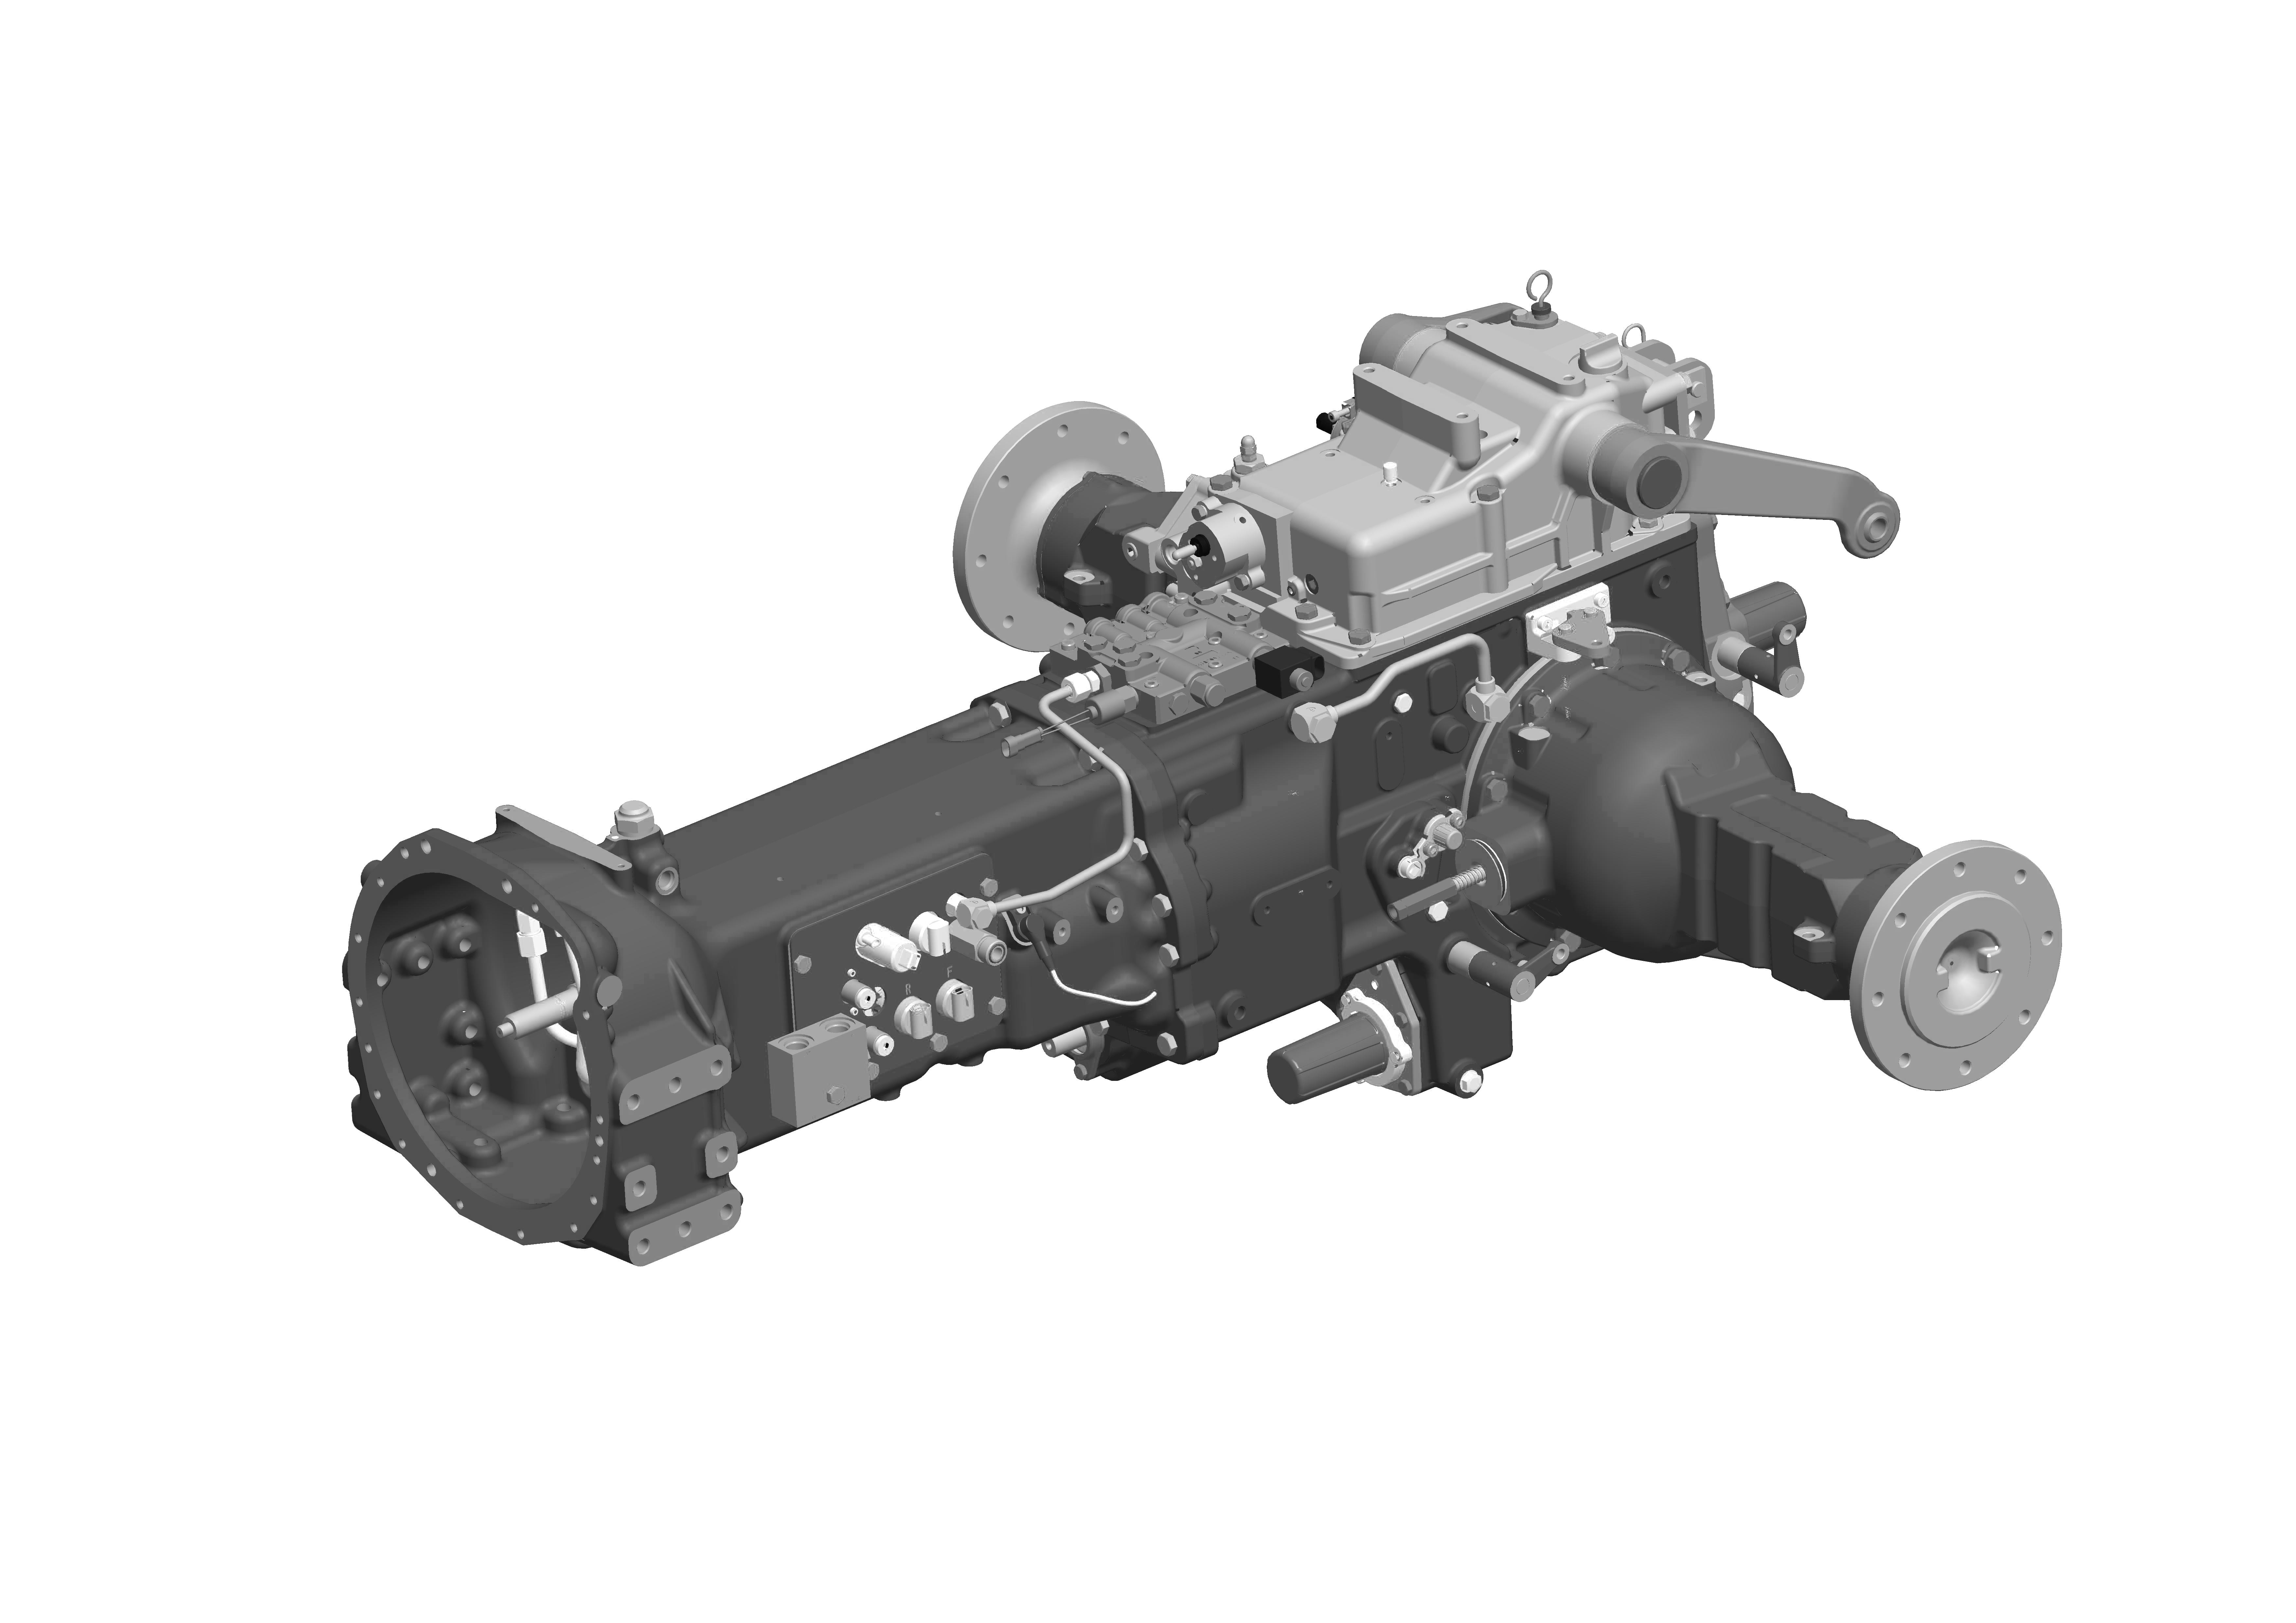 Drivelines and CVT (continuously variable transmission) for agricultural equipments